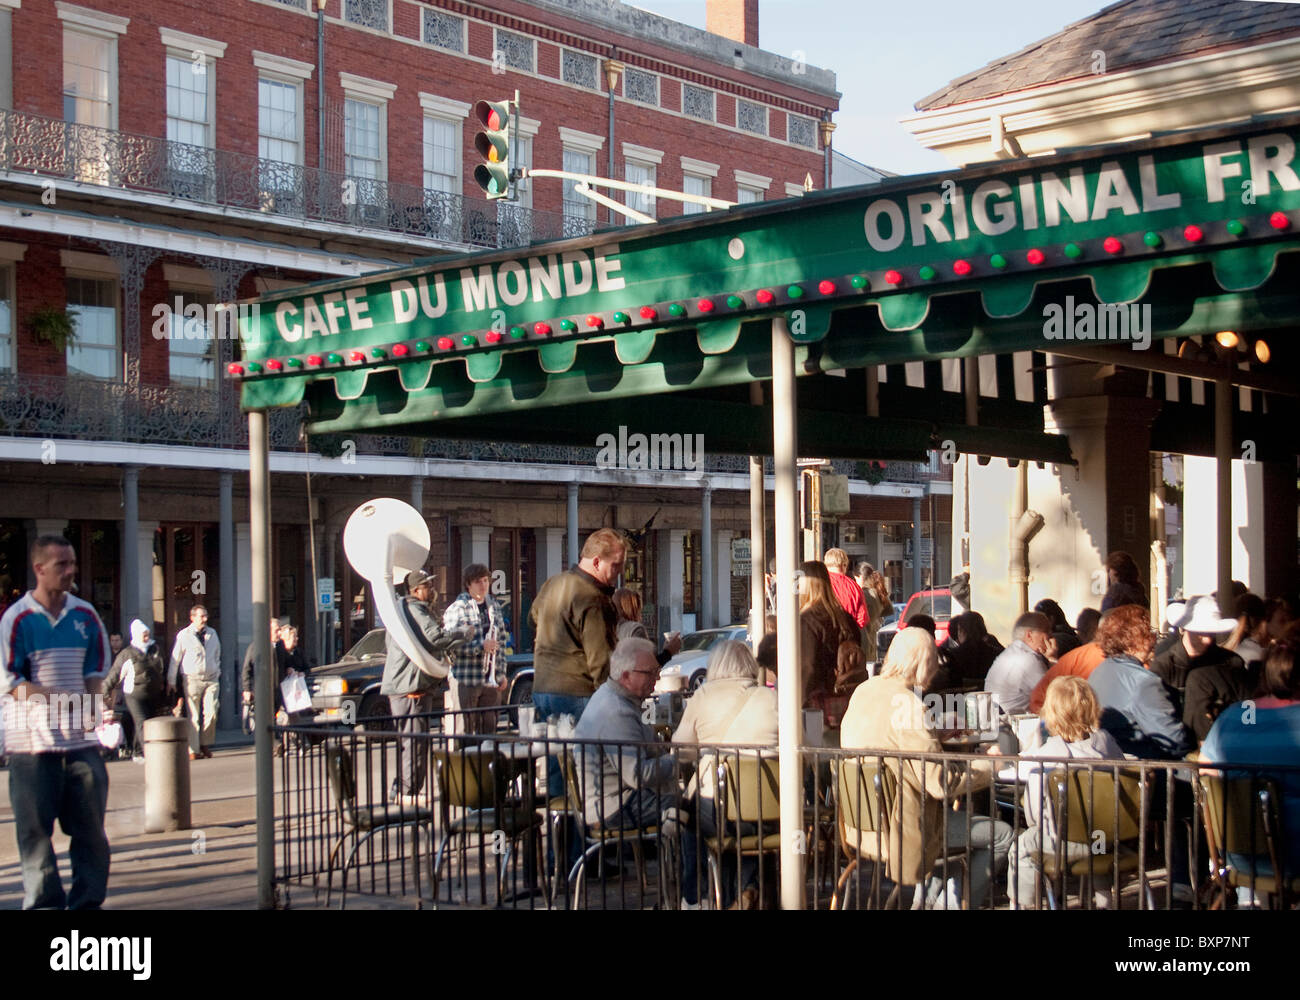 cafe du monde the original french market coffee beignet stand in stock photo royalty free. Black Bedroom Furniture Sets. Home Design Ideas